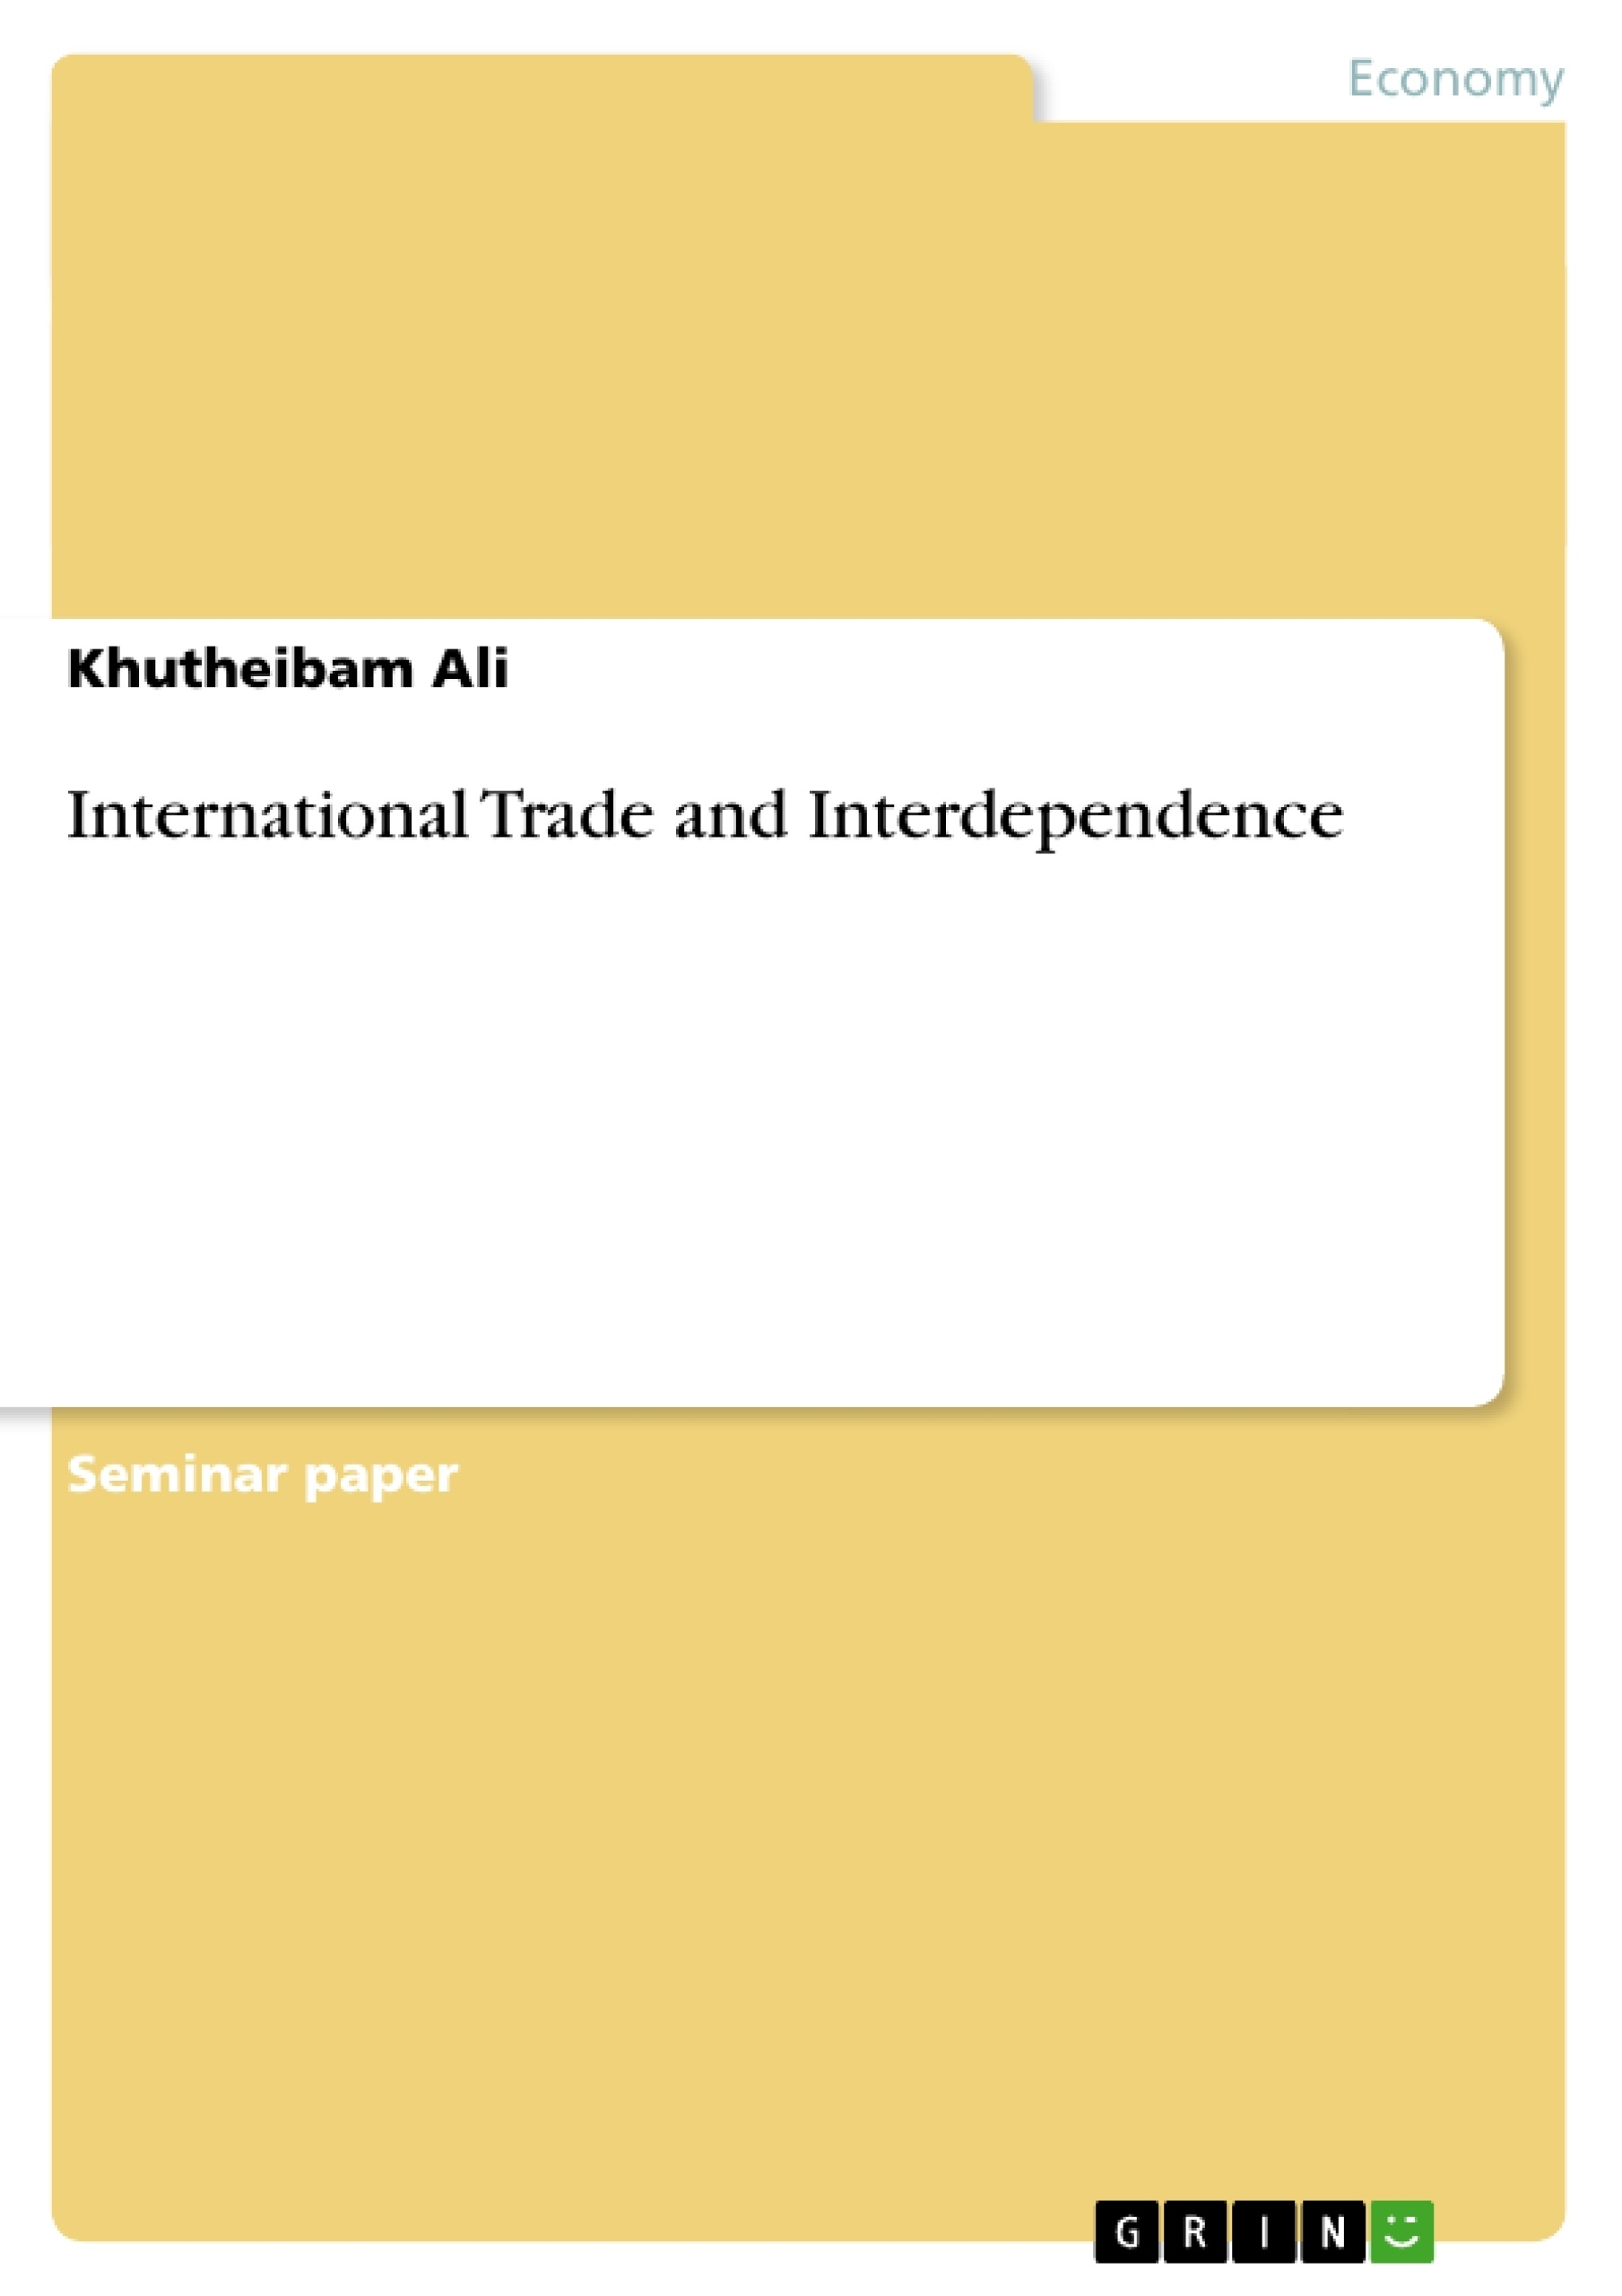 Title: International Trade and Interdependence